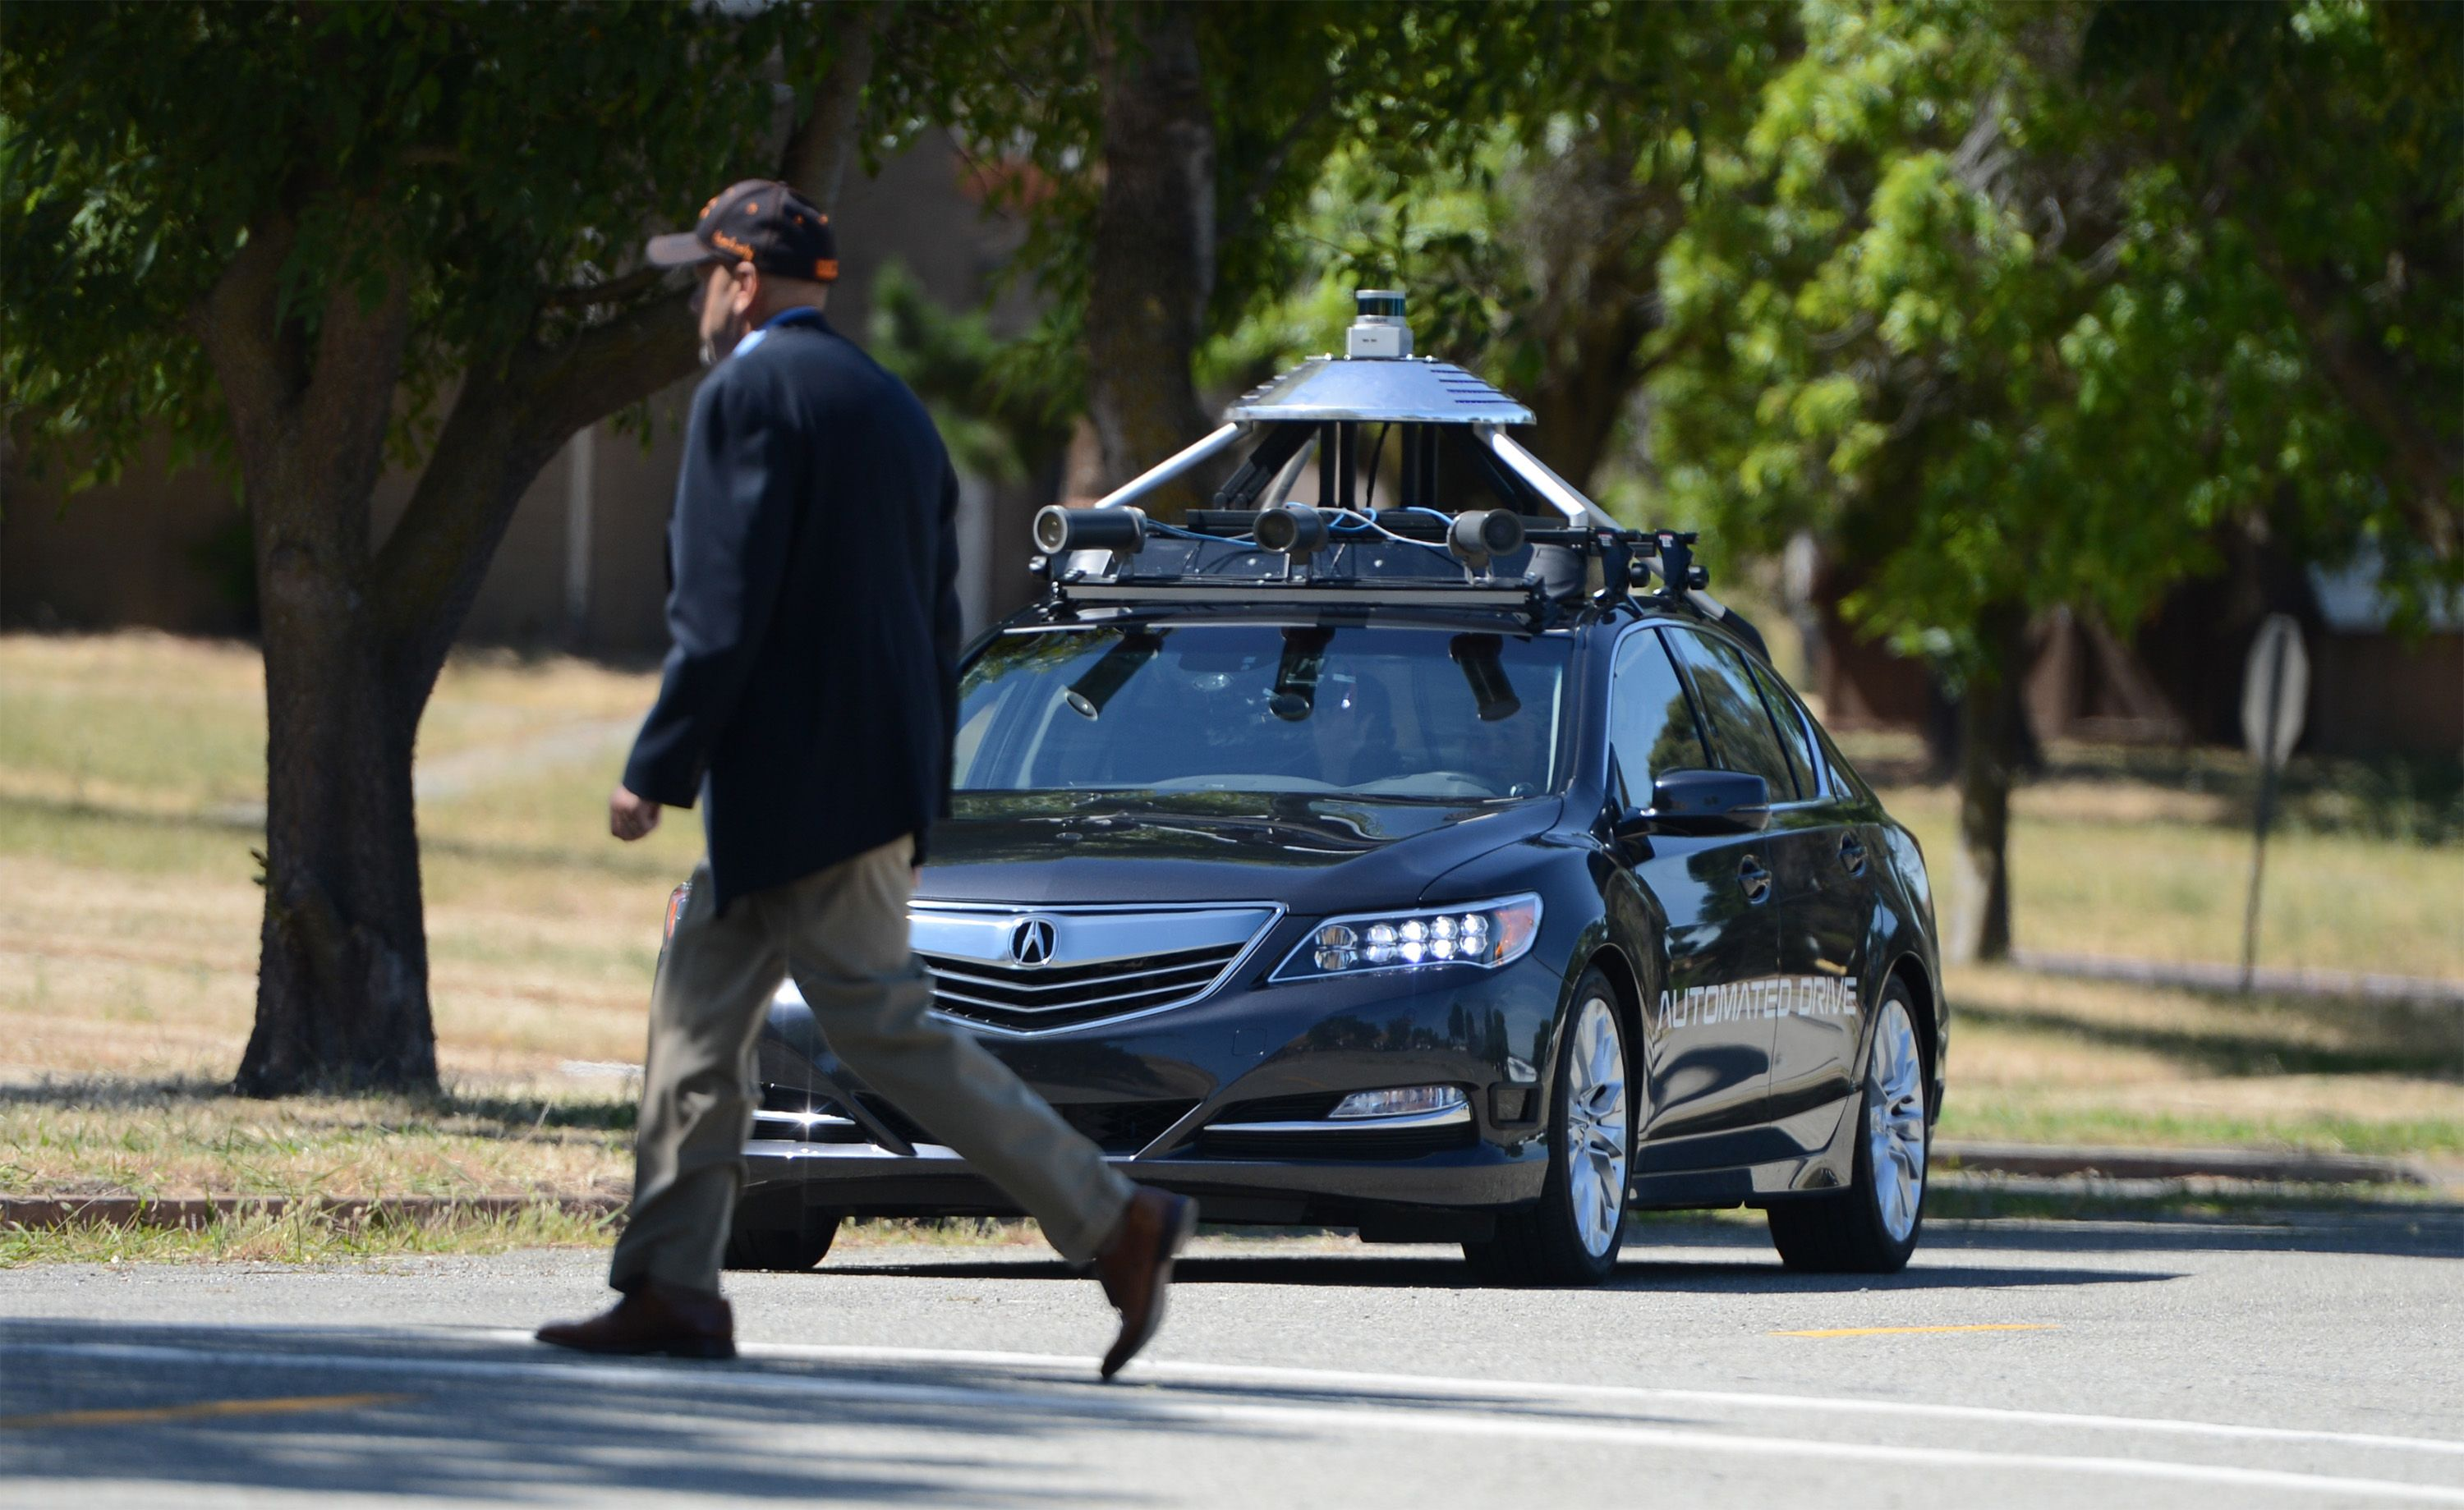 An Acura RLX equipped with autonomous vehicle technology slows to avoid a pedestrian in a sidewalk as it is demonstrated at the former Concord Naval Weapons Station on June 1, 2016 in Concord, Calif.(Kristopher Skinner/Bay Area News Group/TNS)